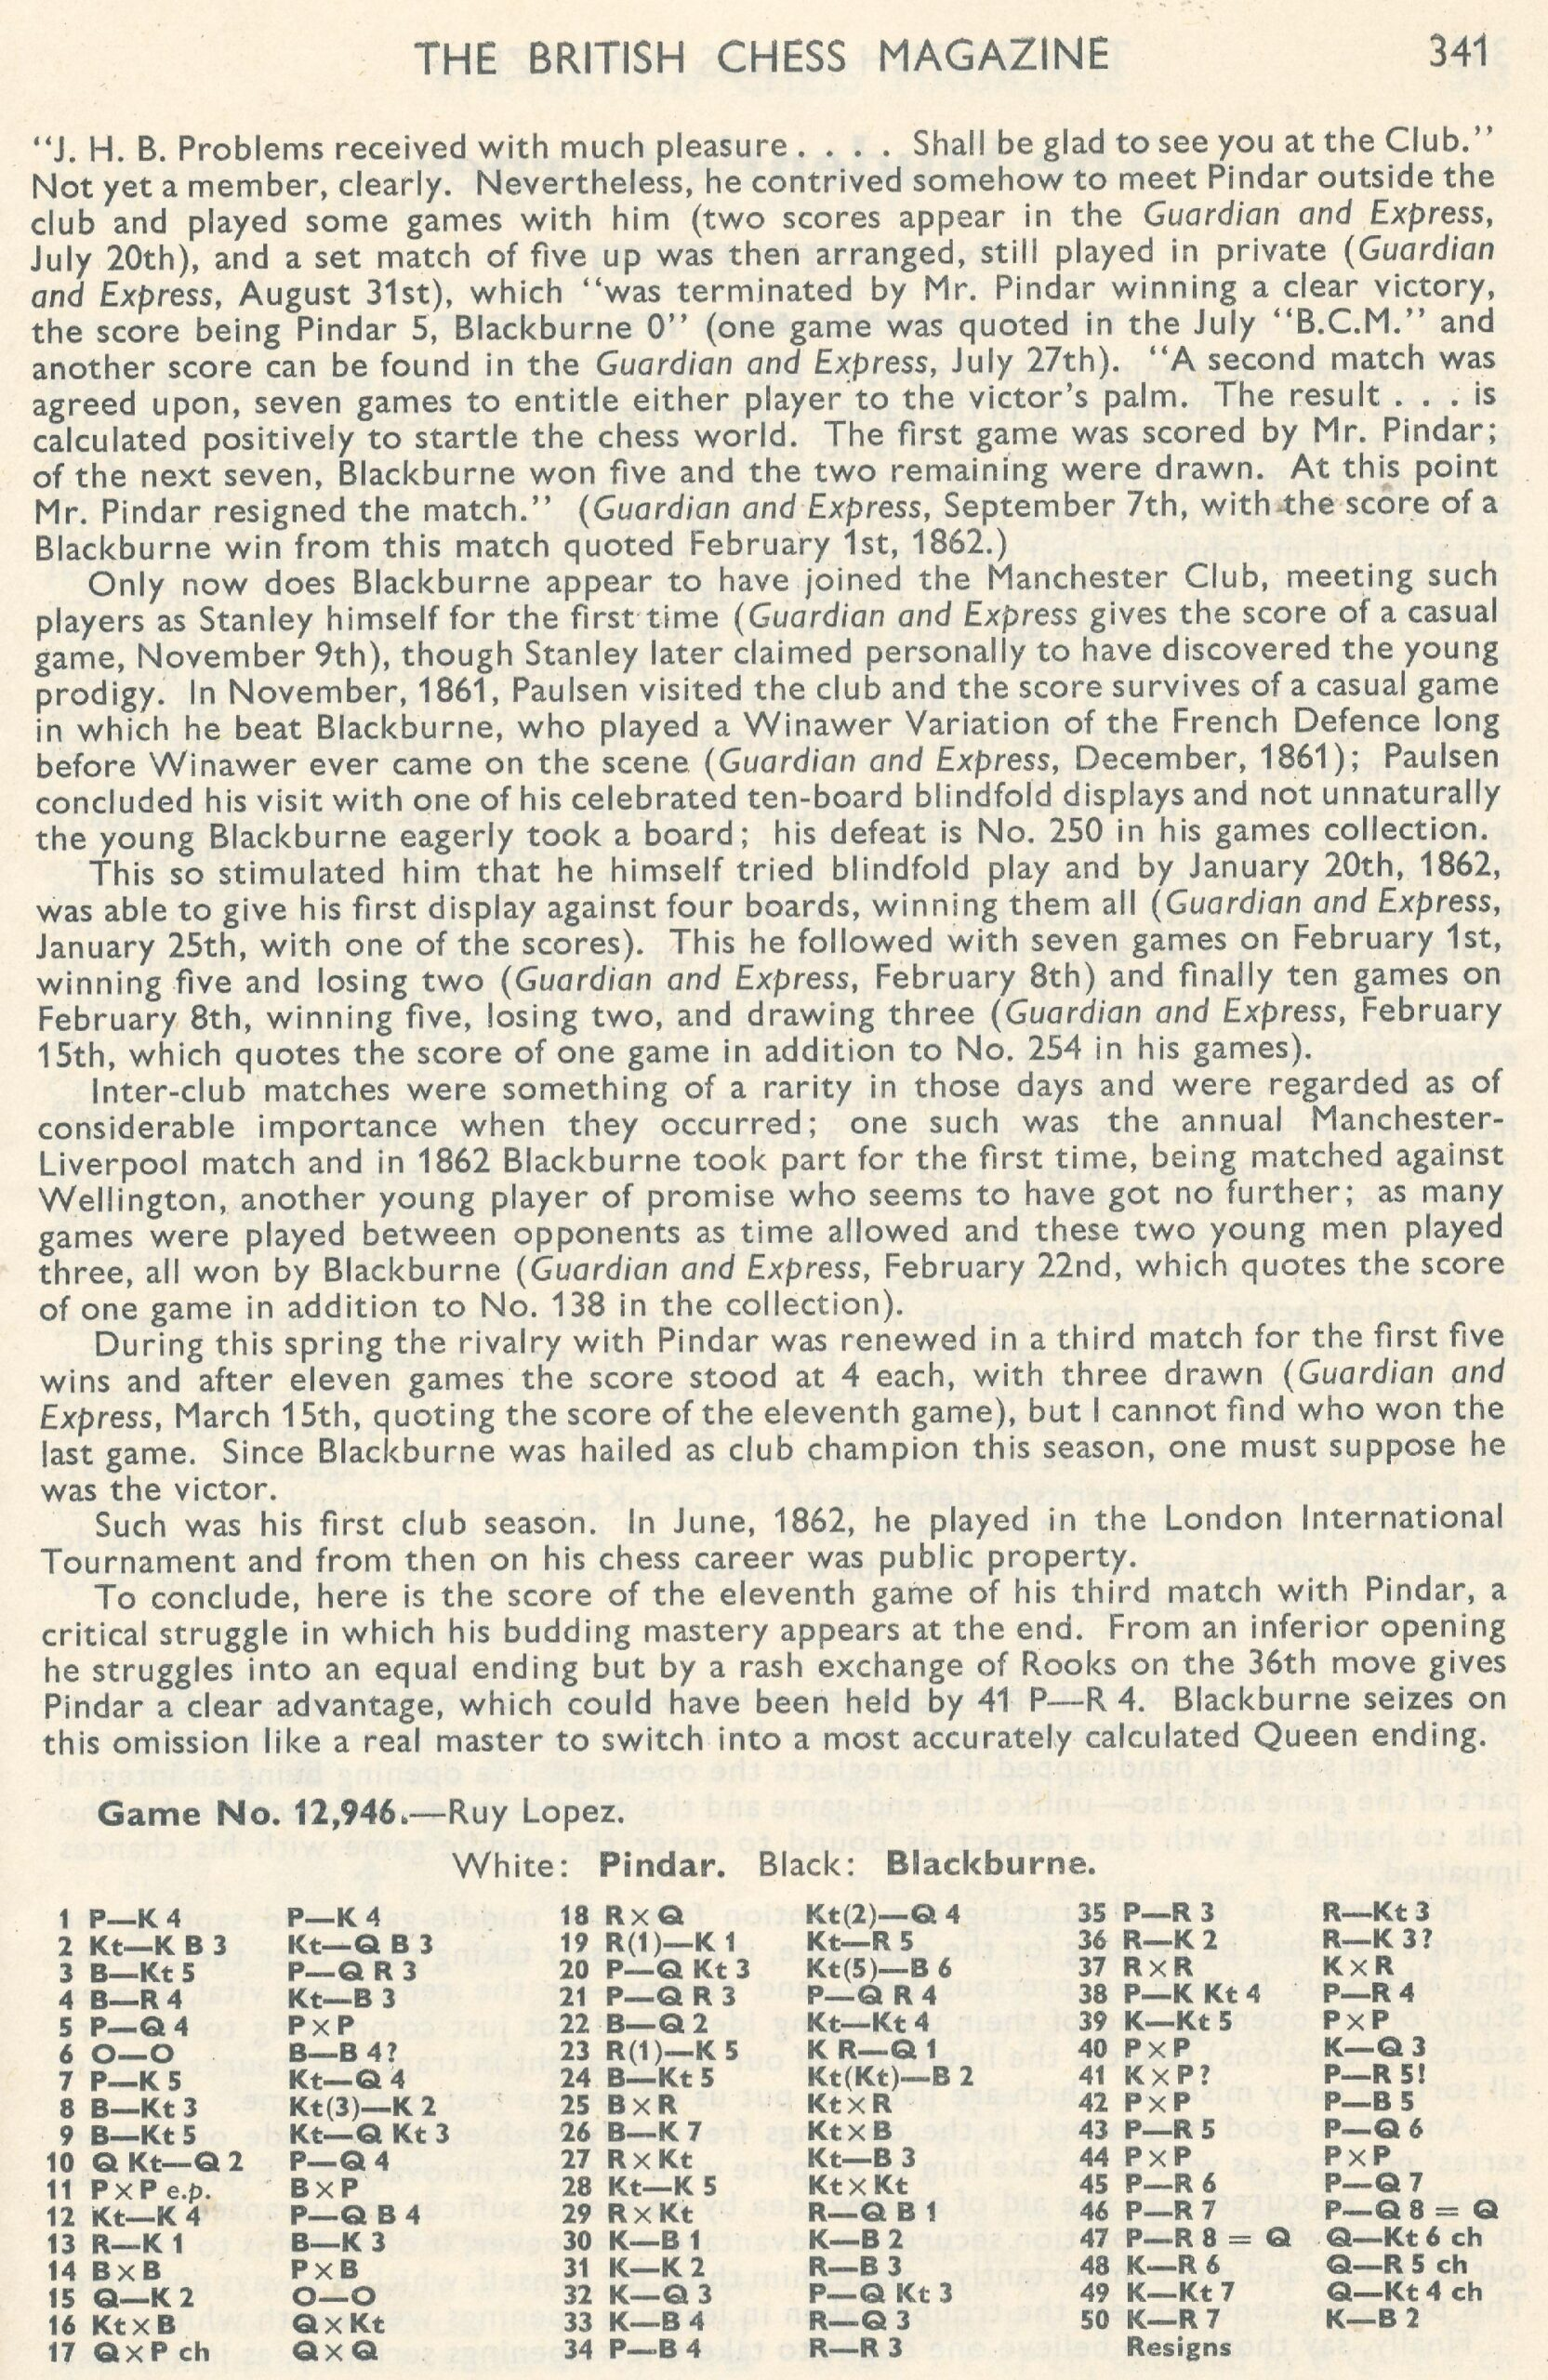 British Chess Magazine, Volume LXXX1 (1961), Number  12 (December), page 341